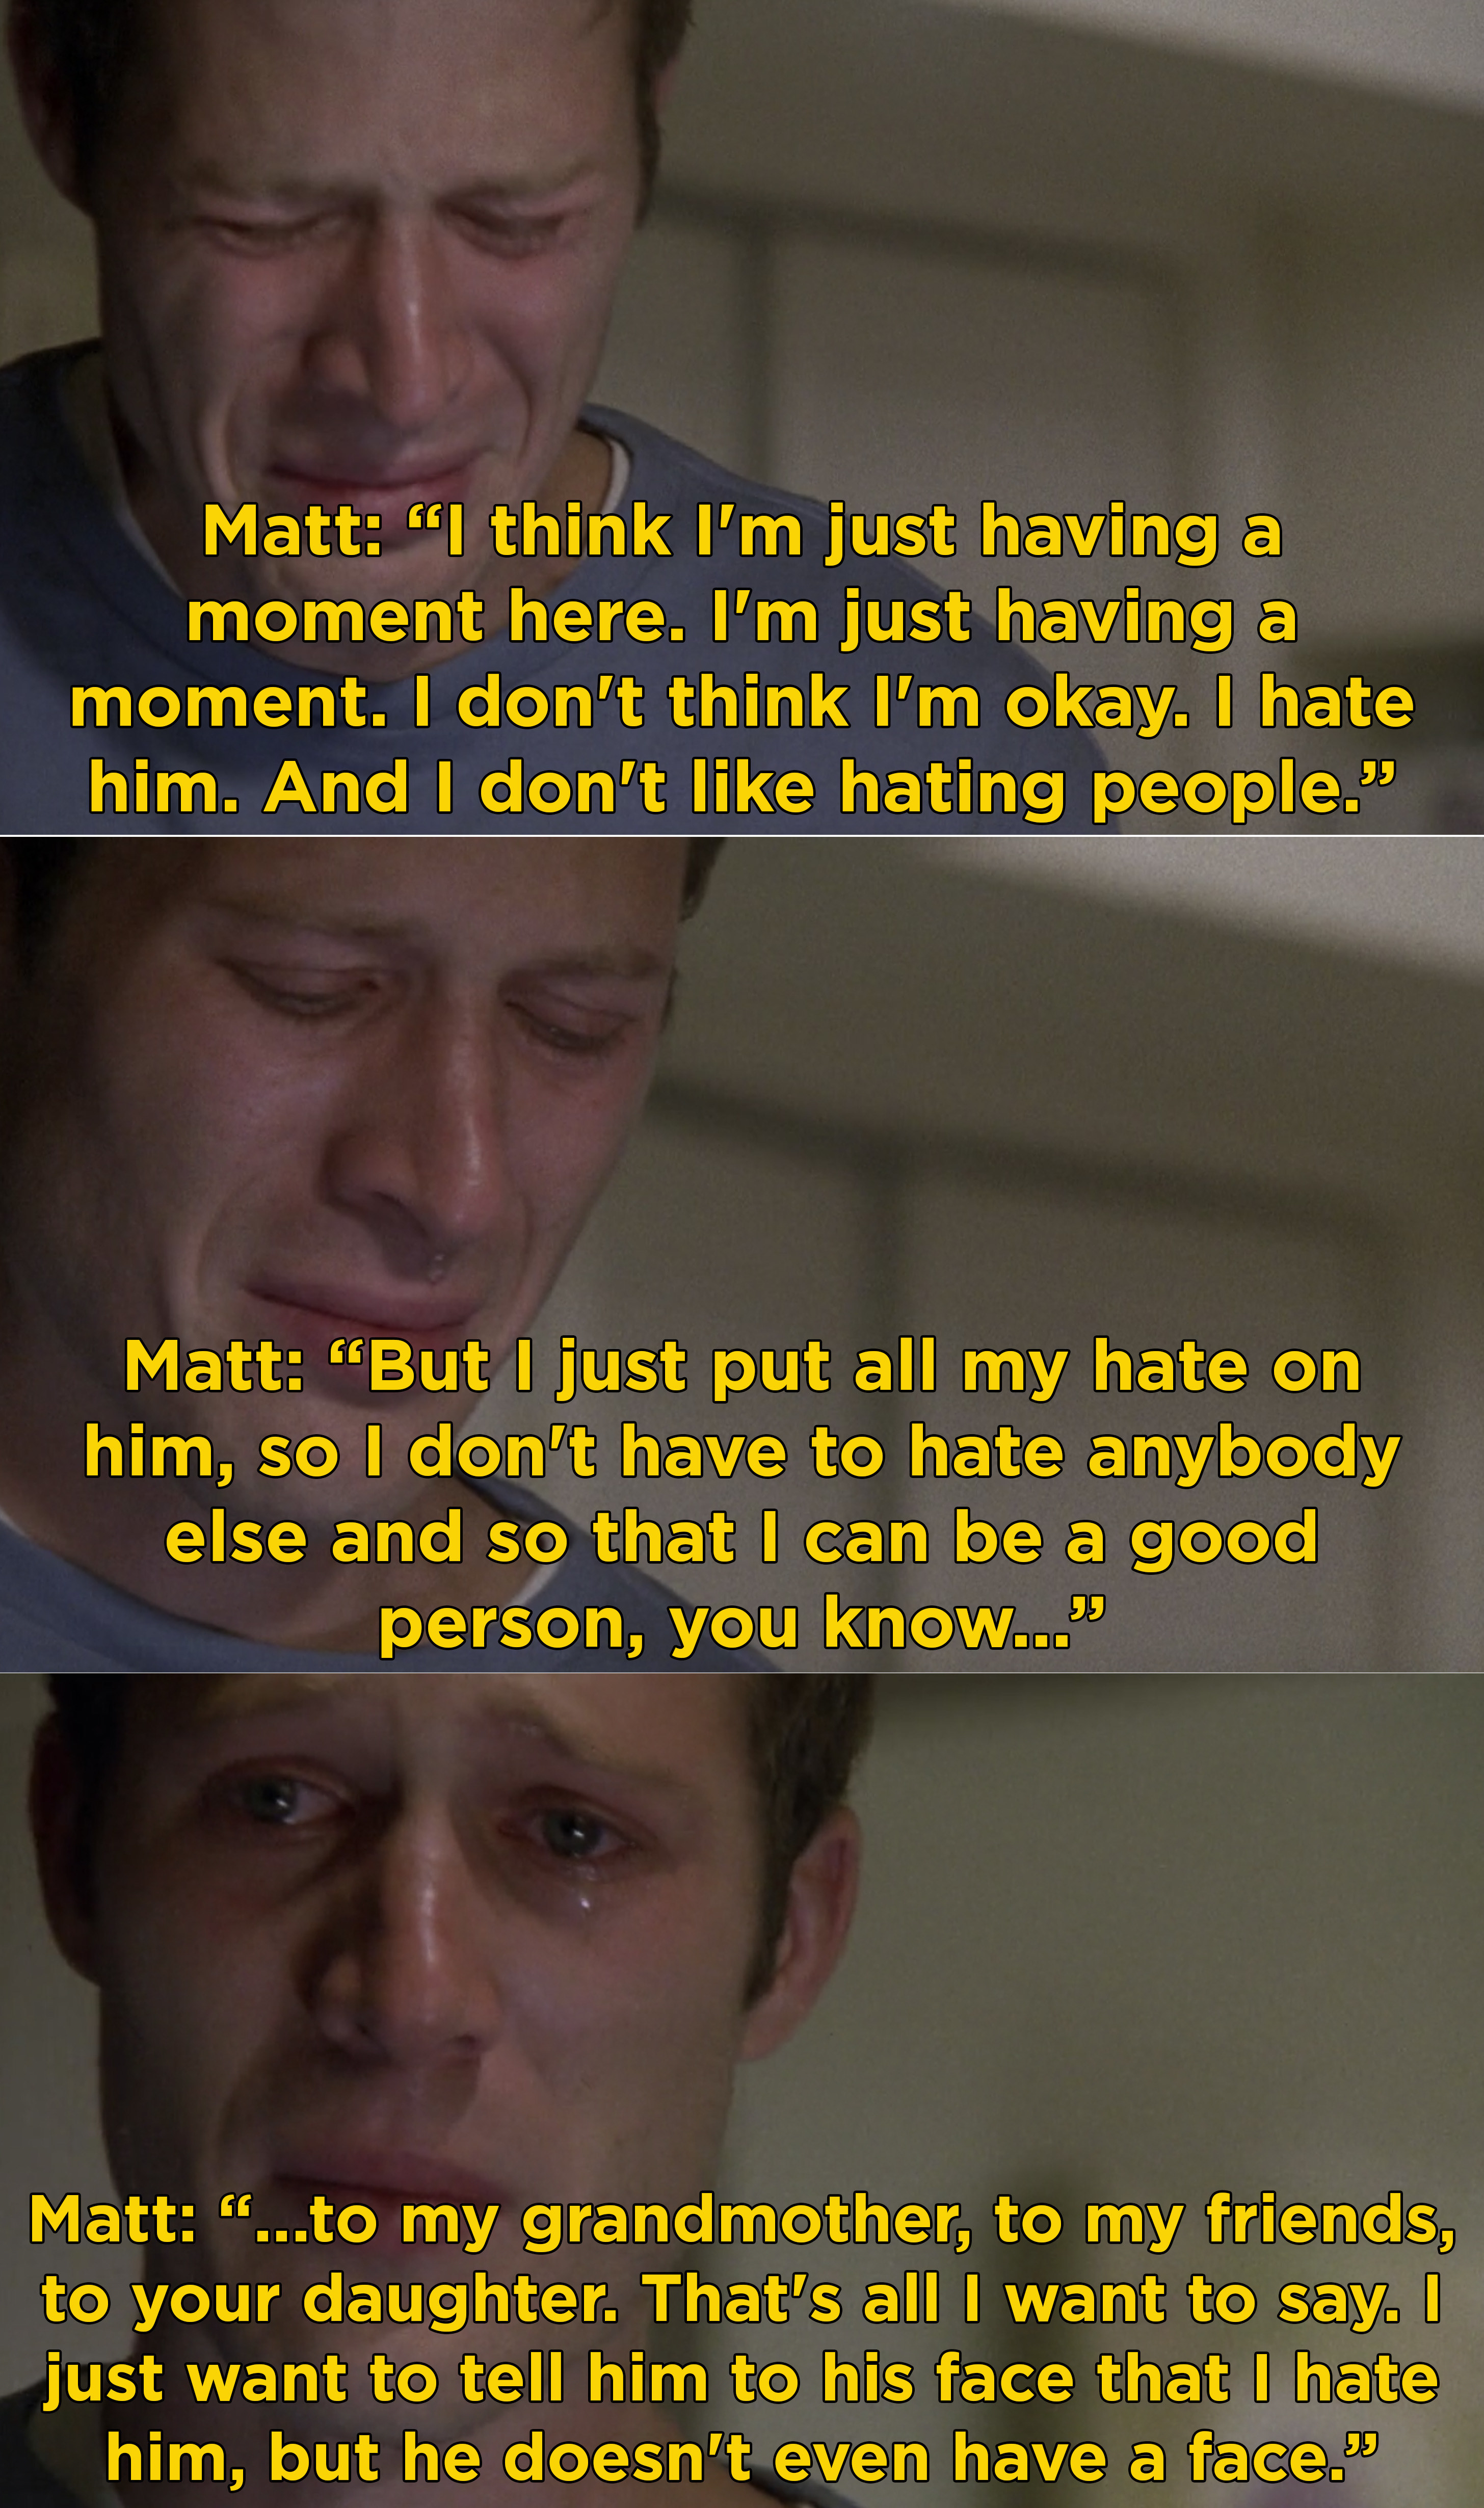 Matt sobbing and saying he hated hating his father and that he wants to be a good person